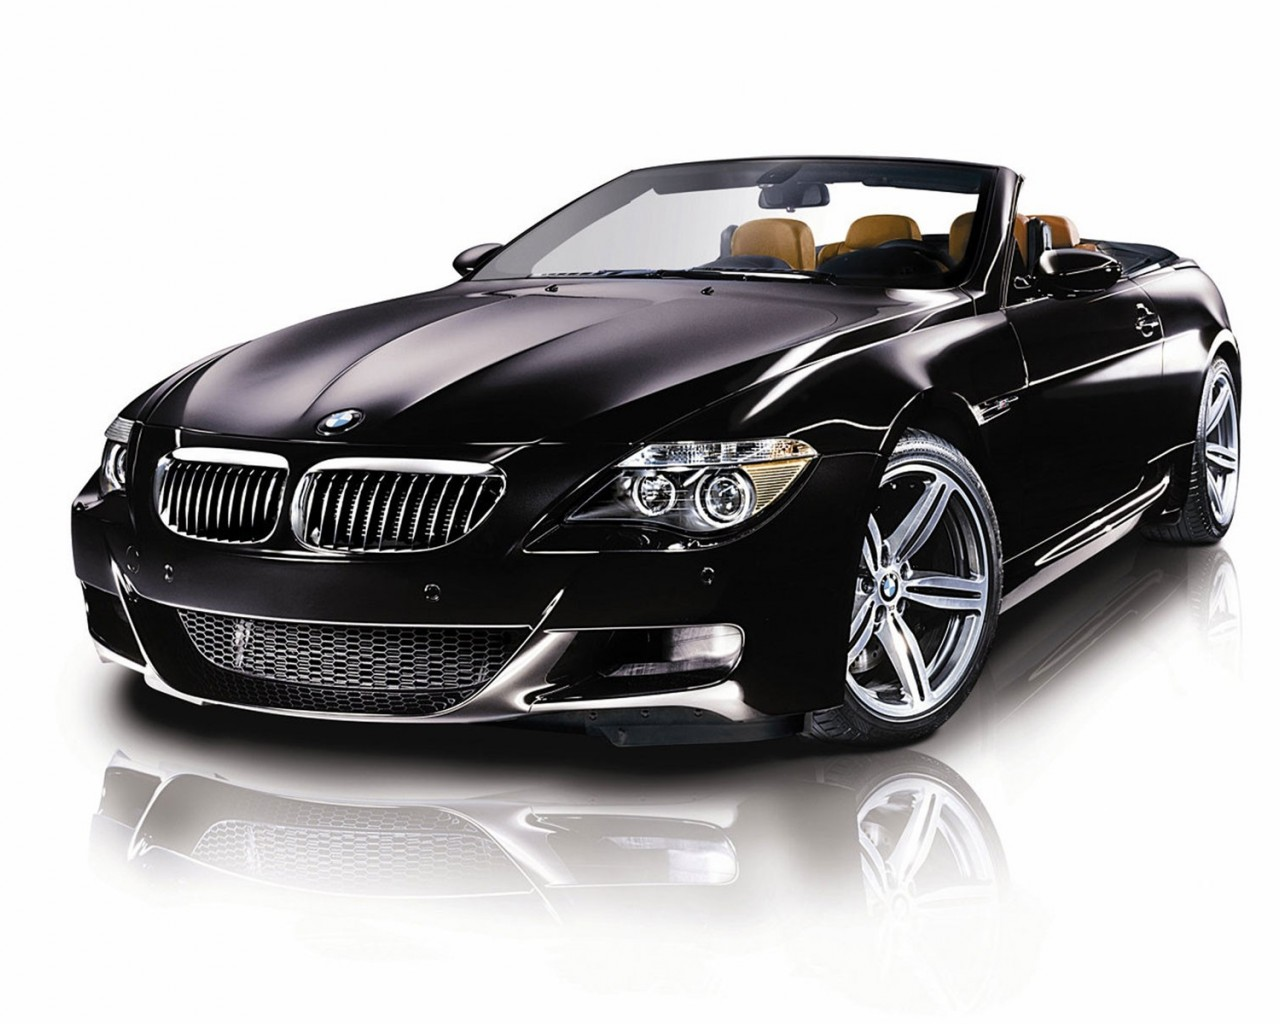 BMW luxury cars with an open top